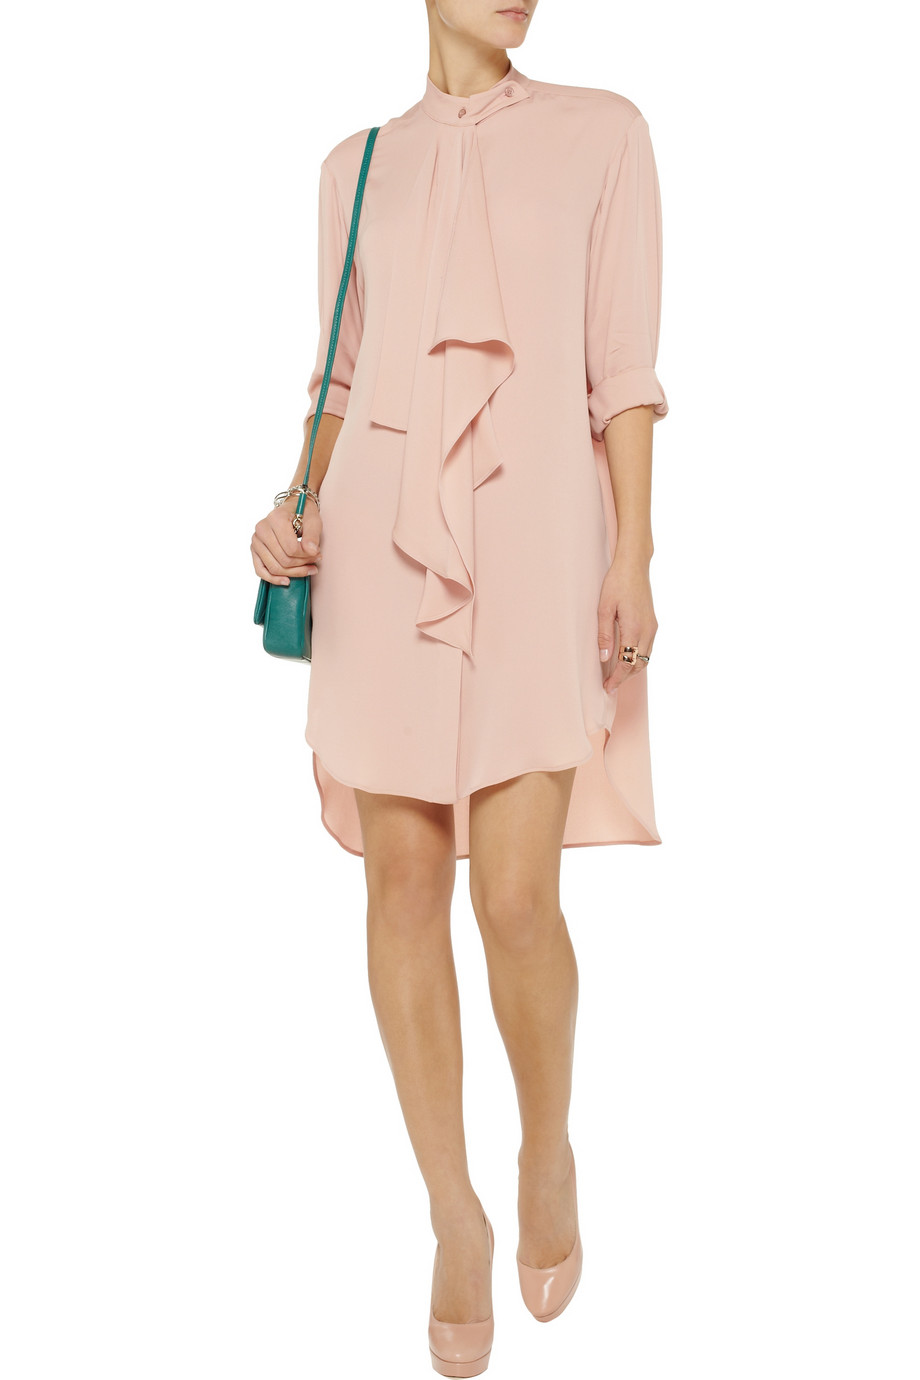 lyst stella mccartney mariana silk shirt dress in pink